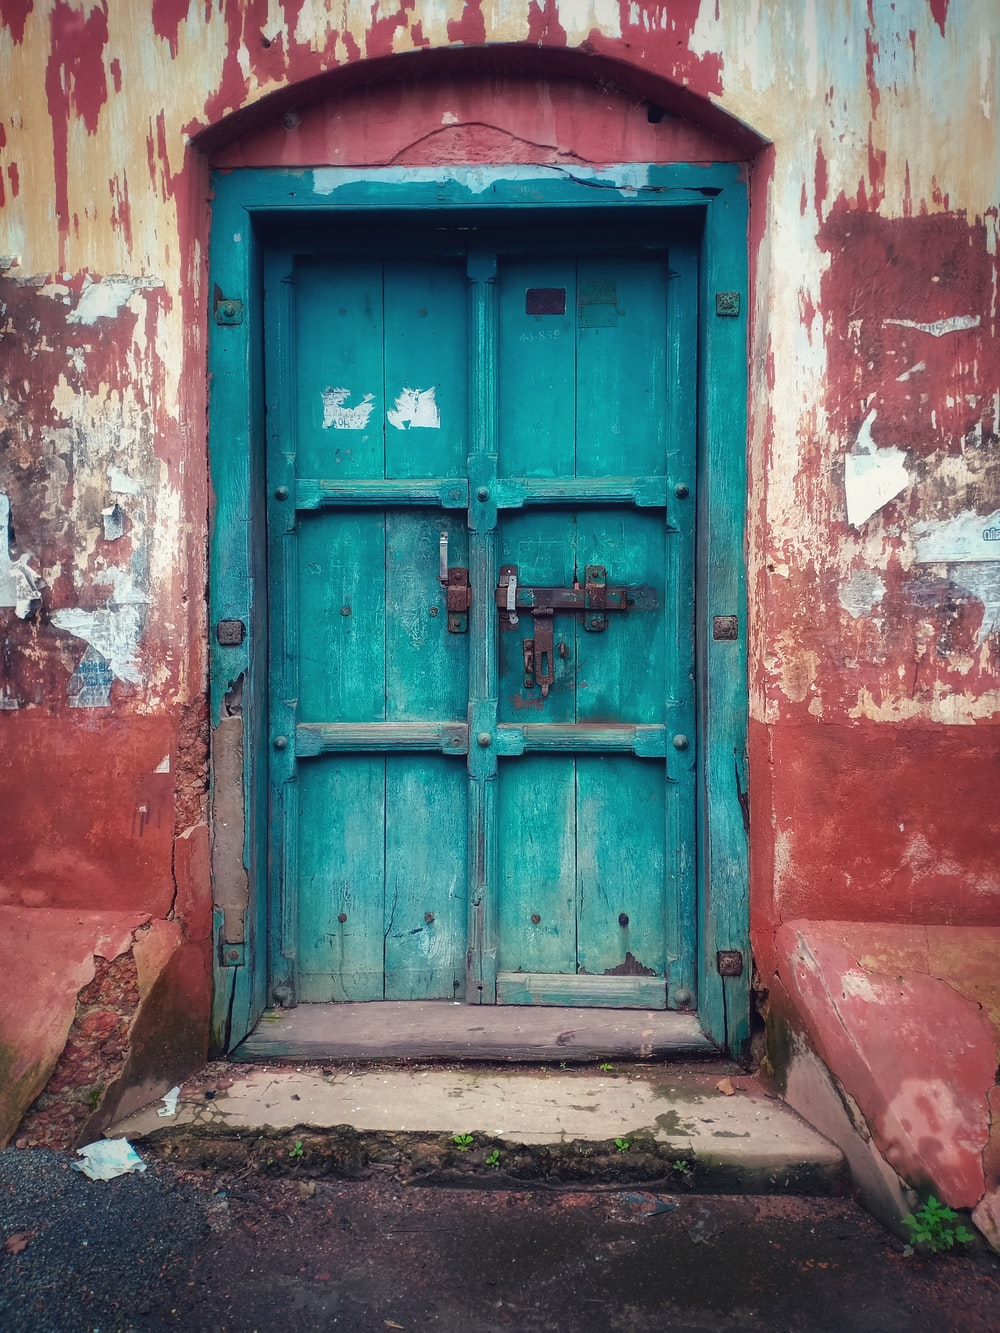 brown concrete building with blue wooden closed door